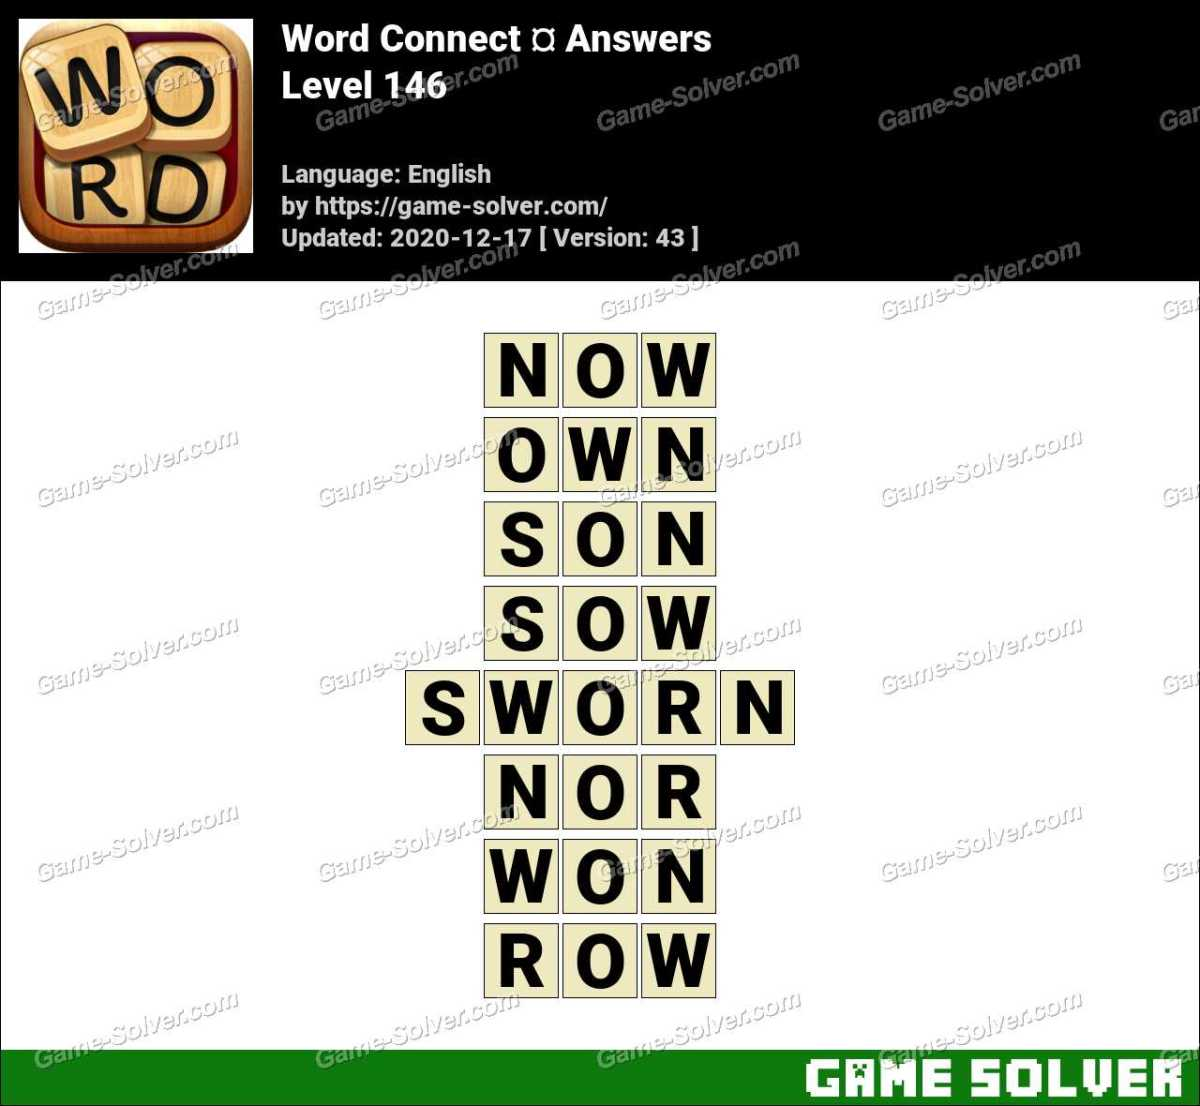 Word Connect Level 146 Answers